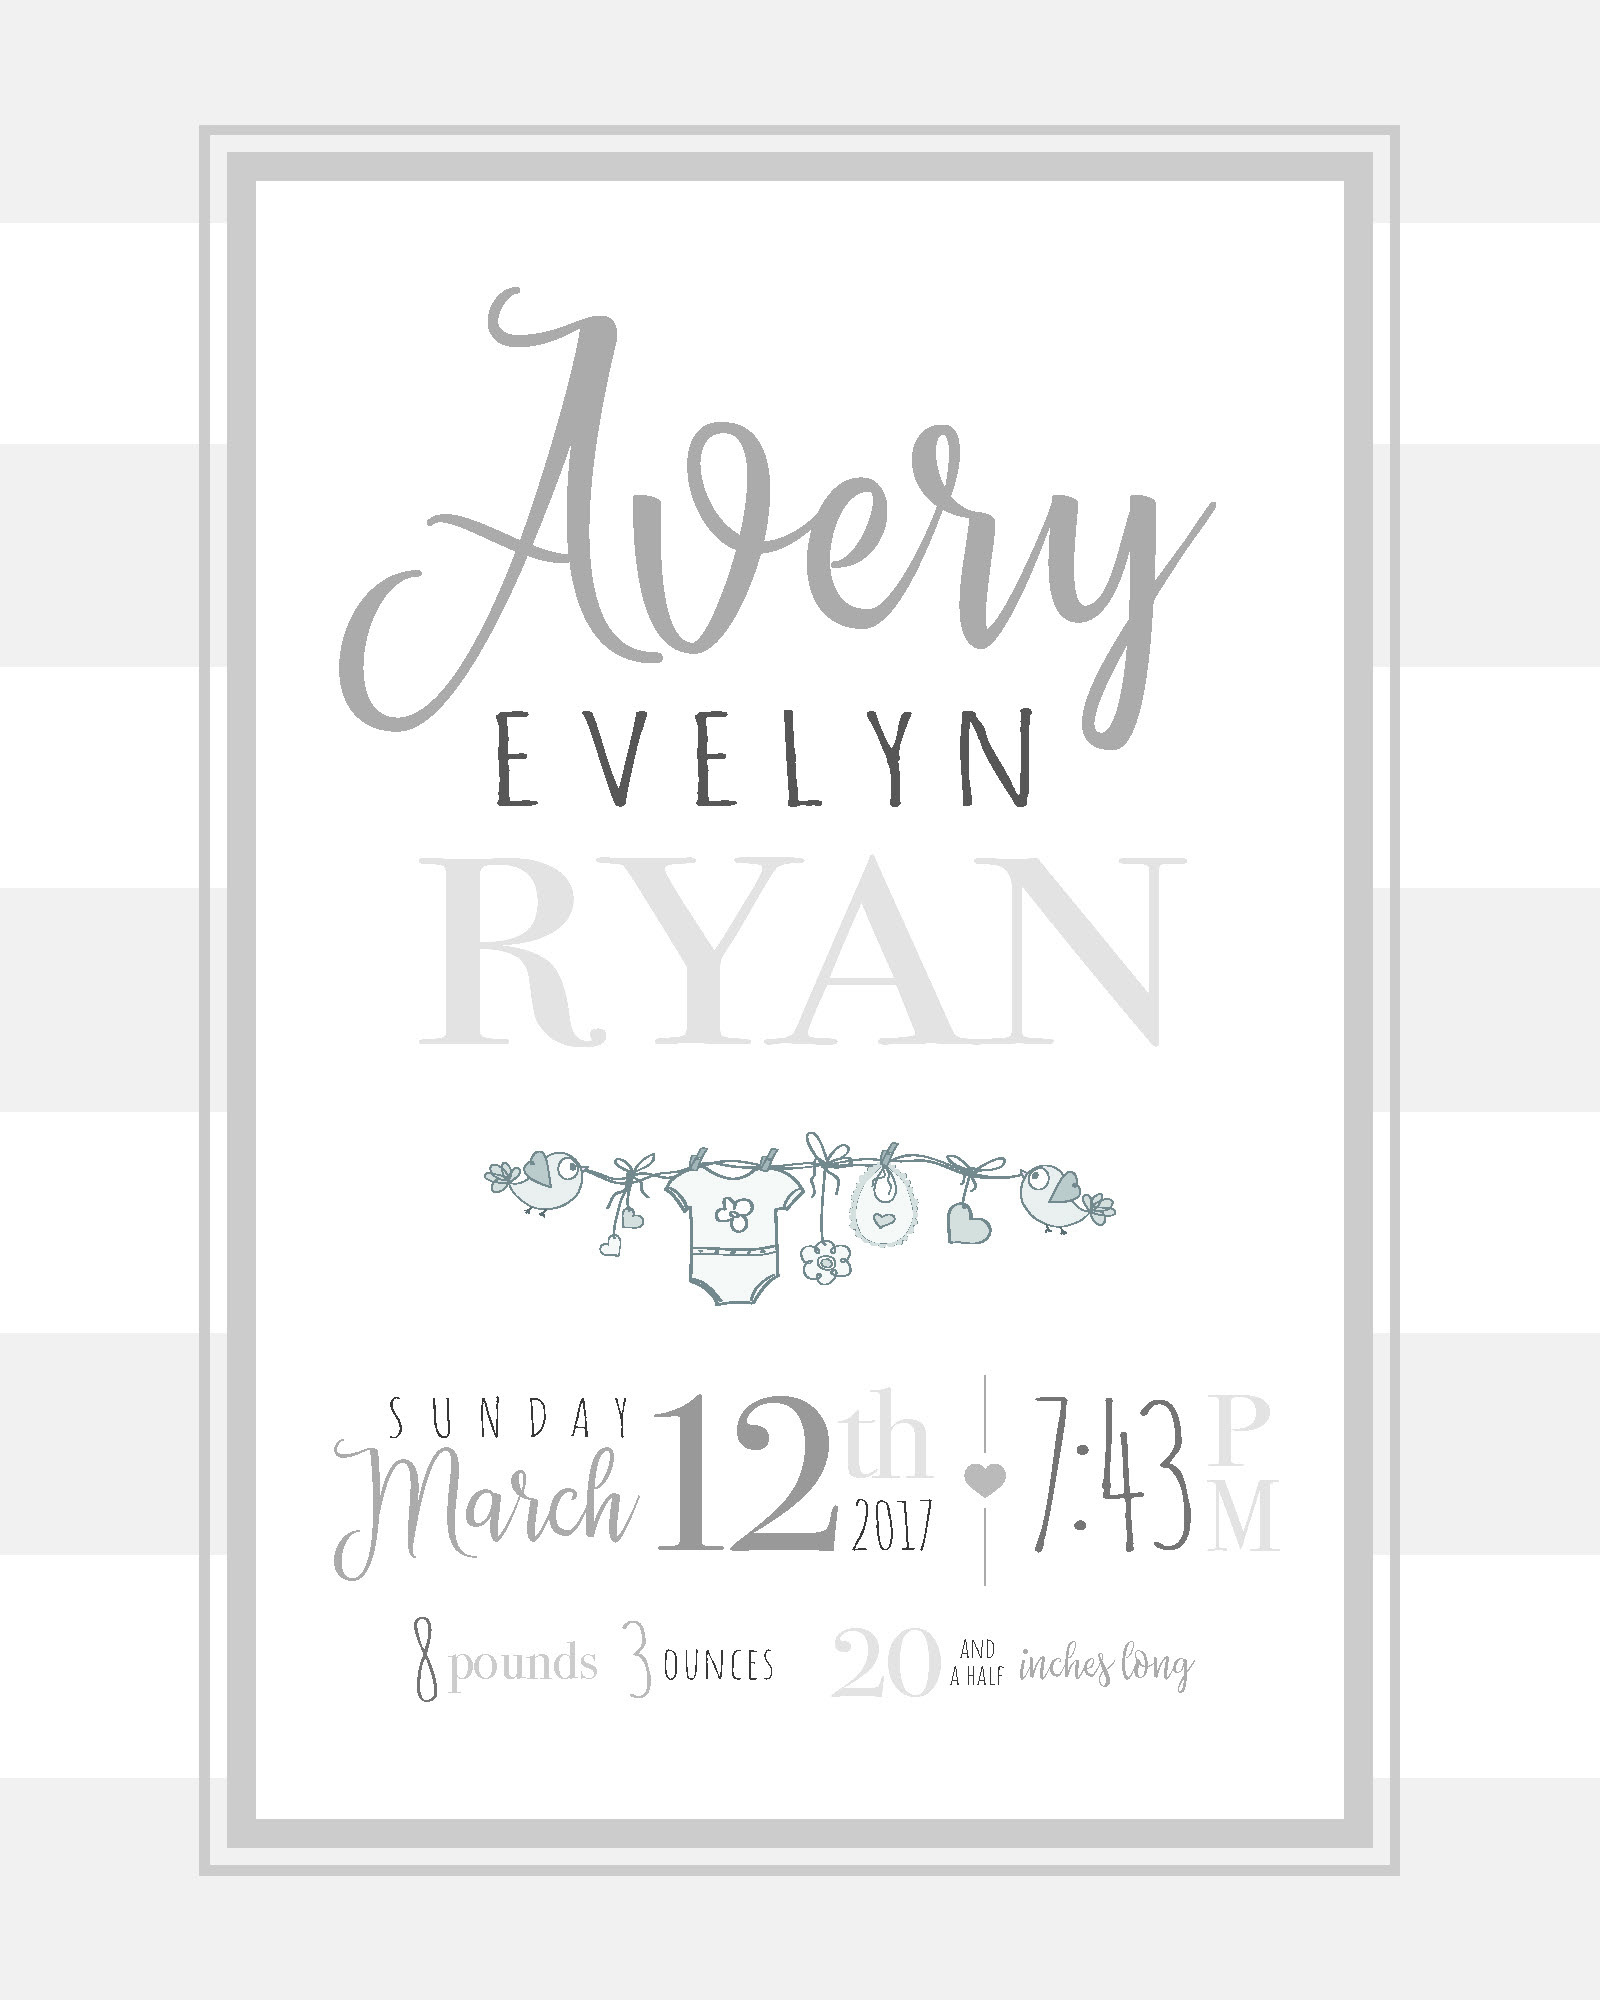 Avery Evelyn Ryan